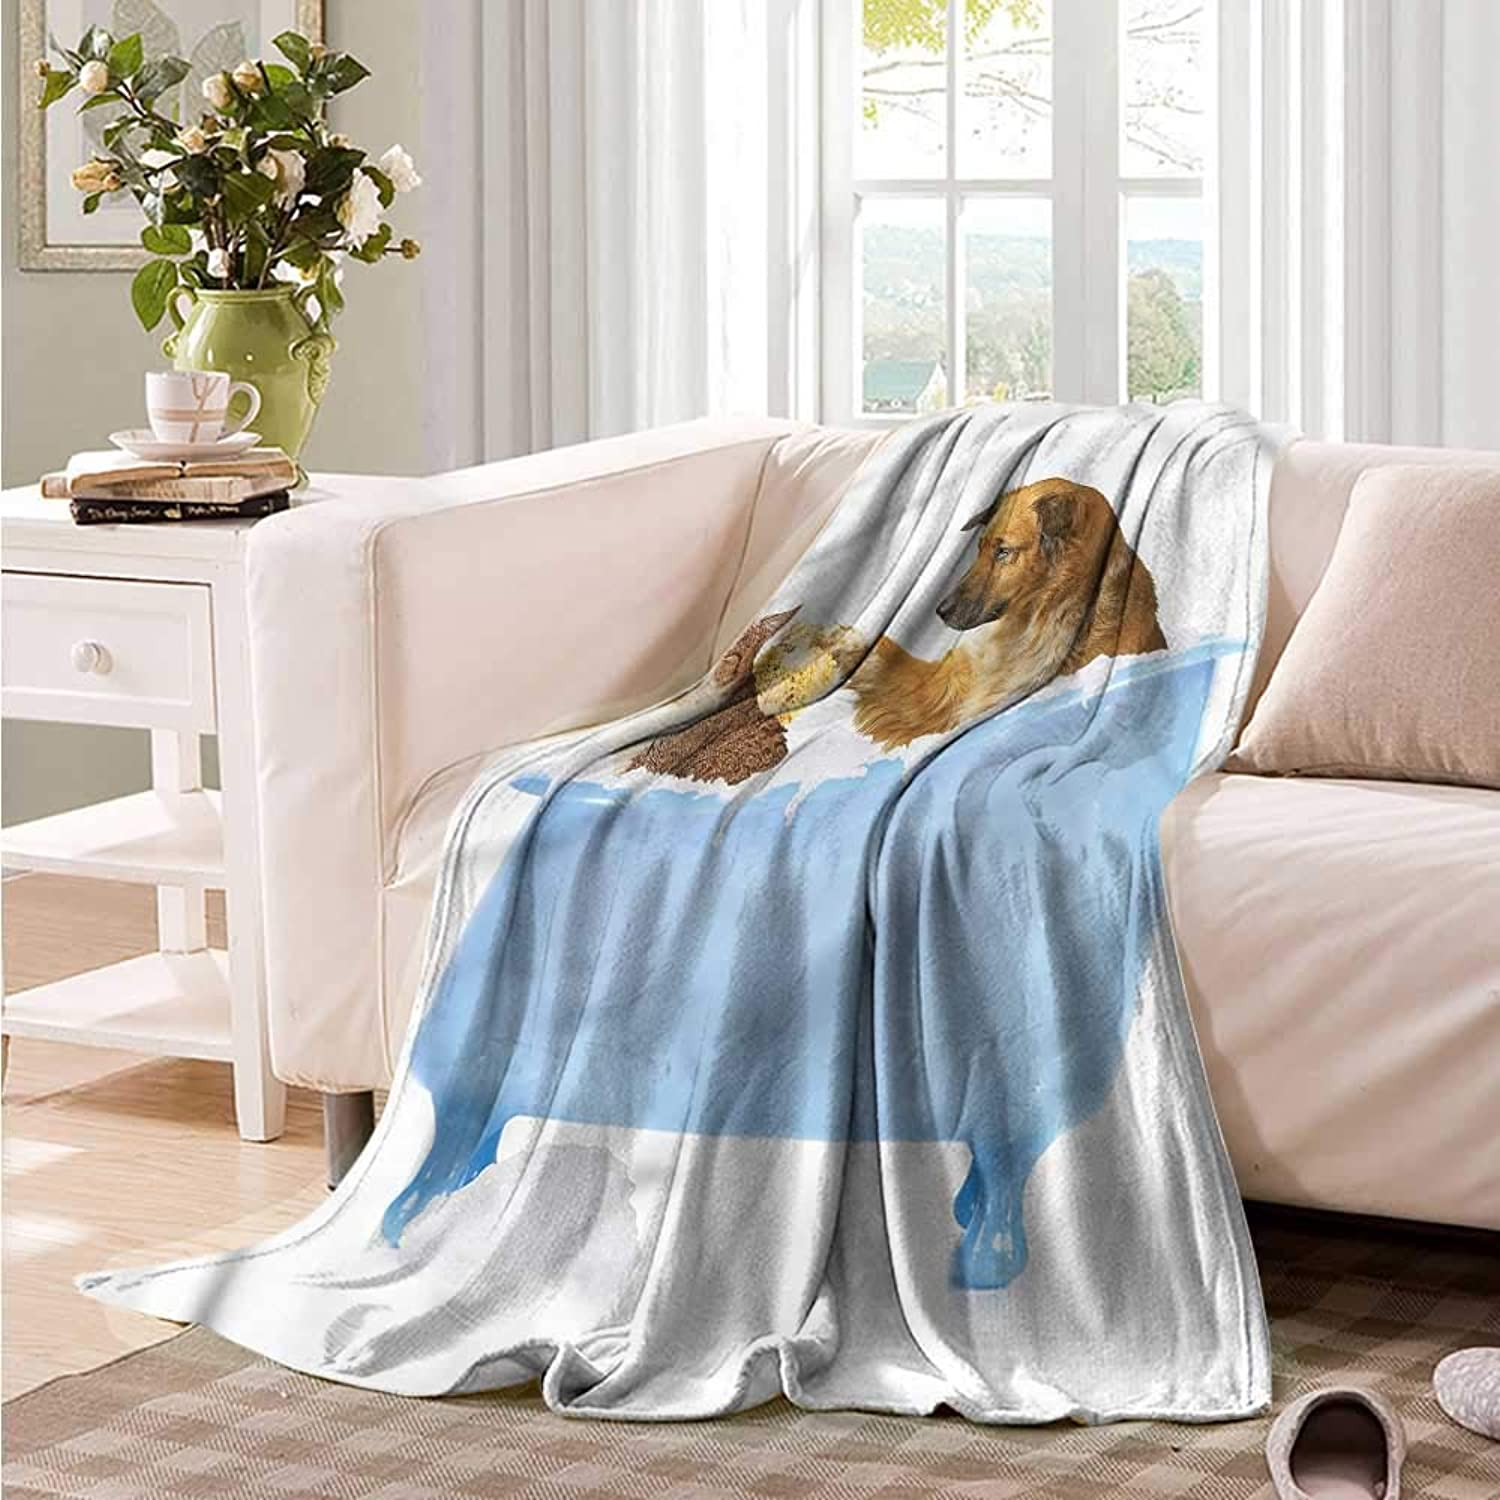 Oncegod Baby Blanket Cat Dog and Cat in Bathtub Portable Car Travel Cover Blanket 60  W x 40  L